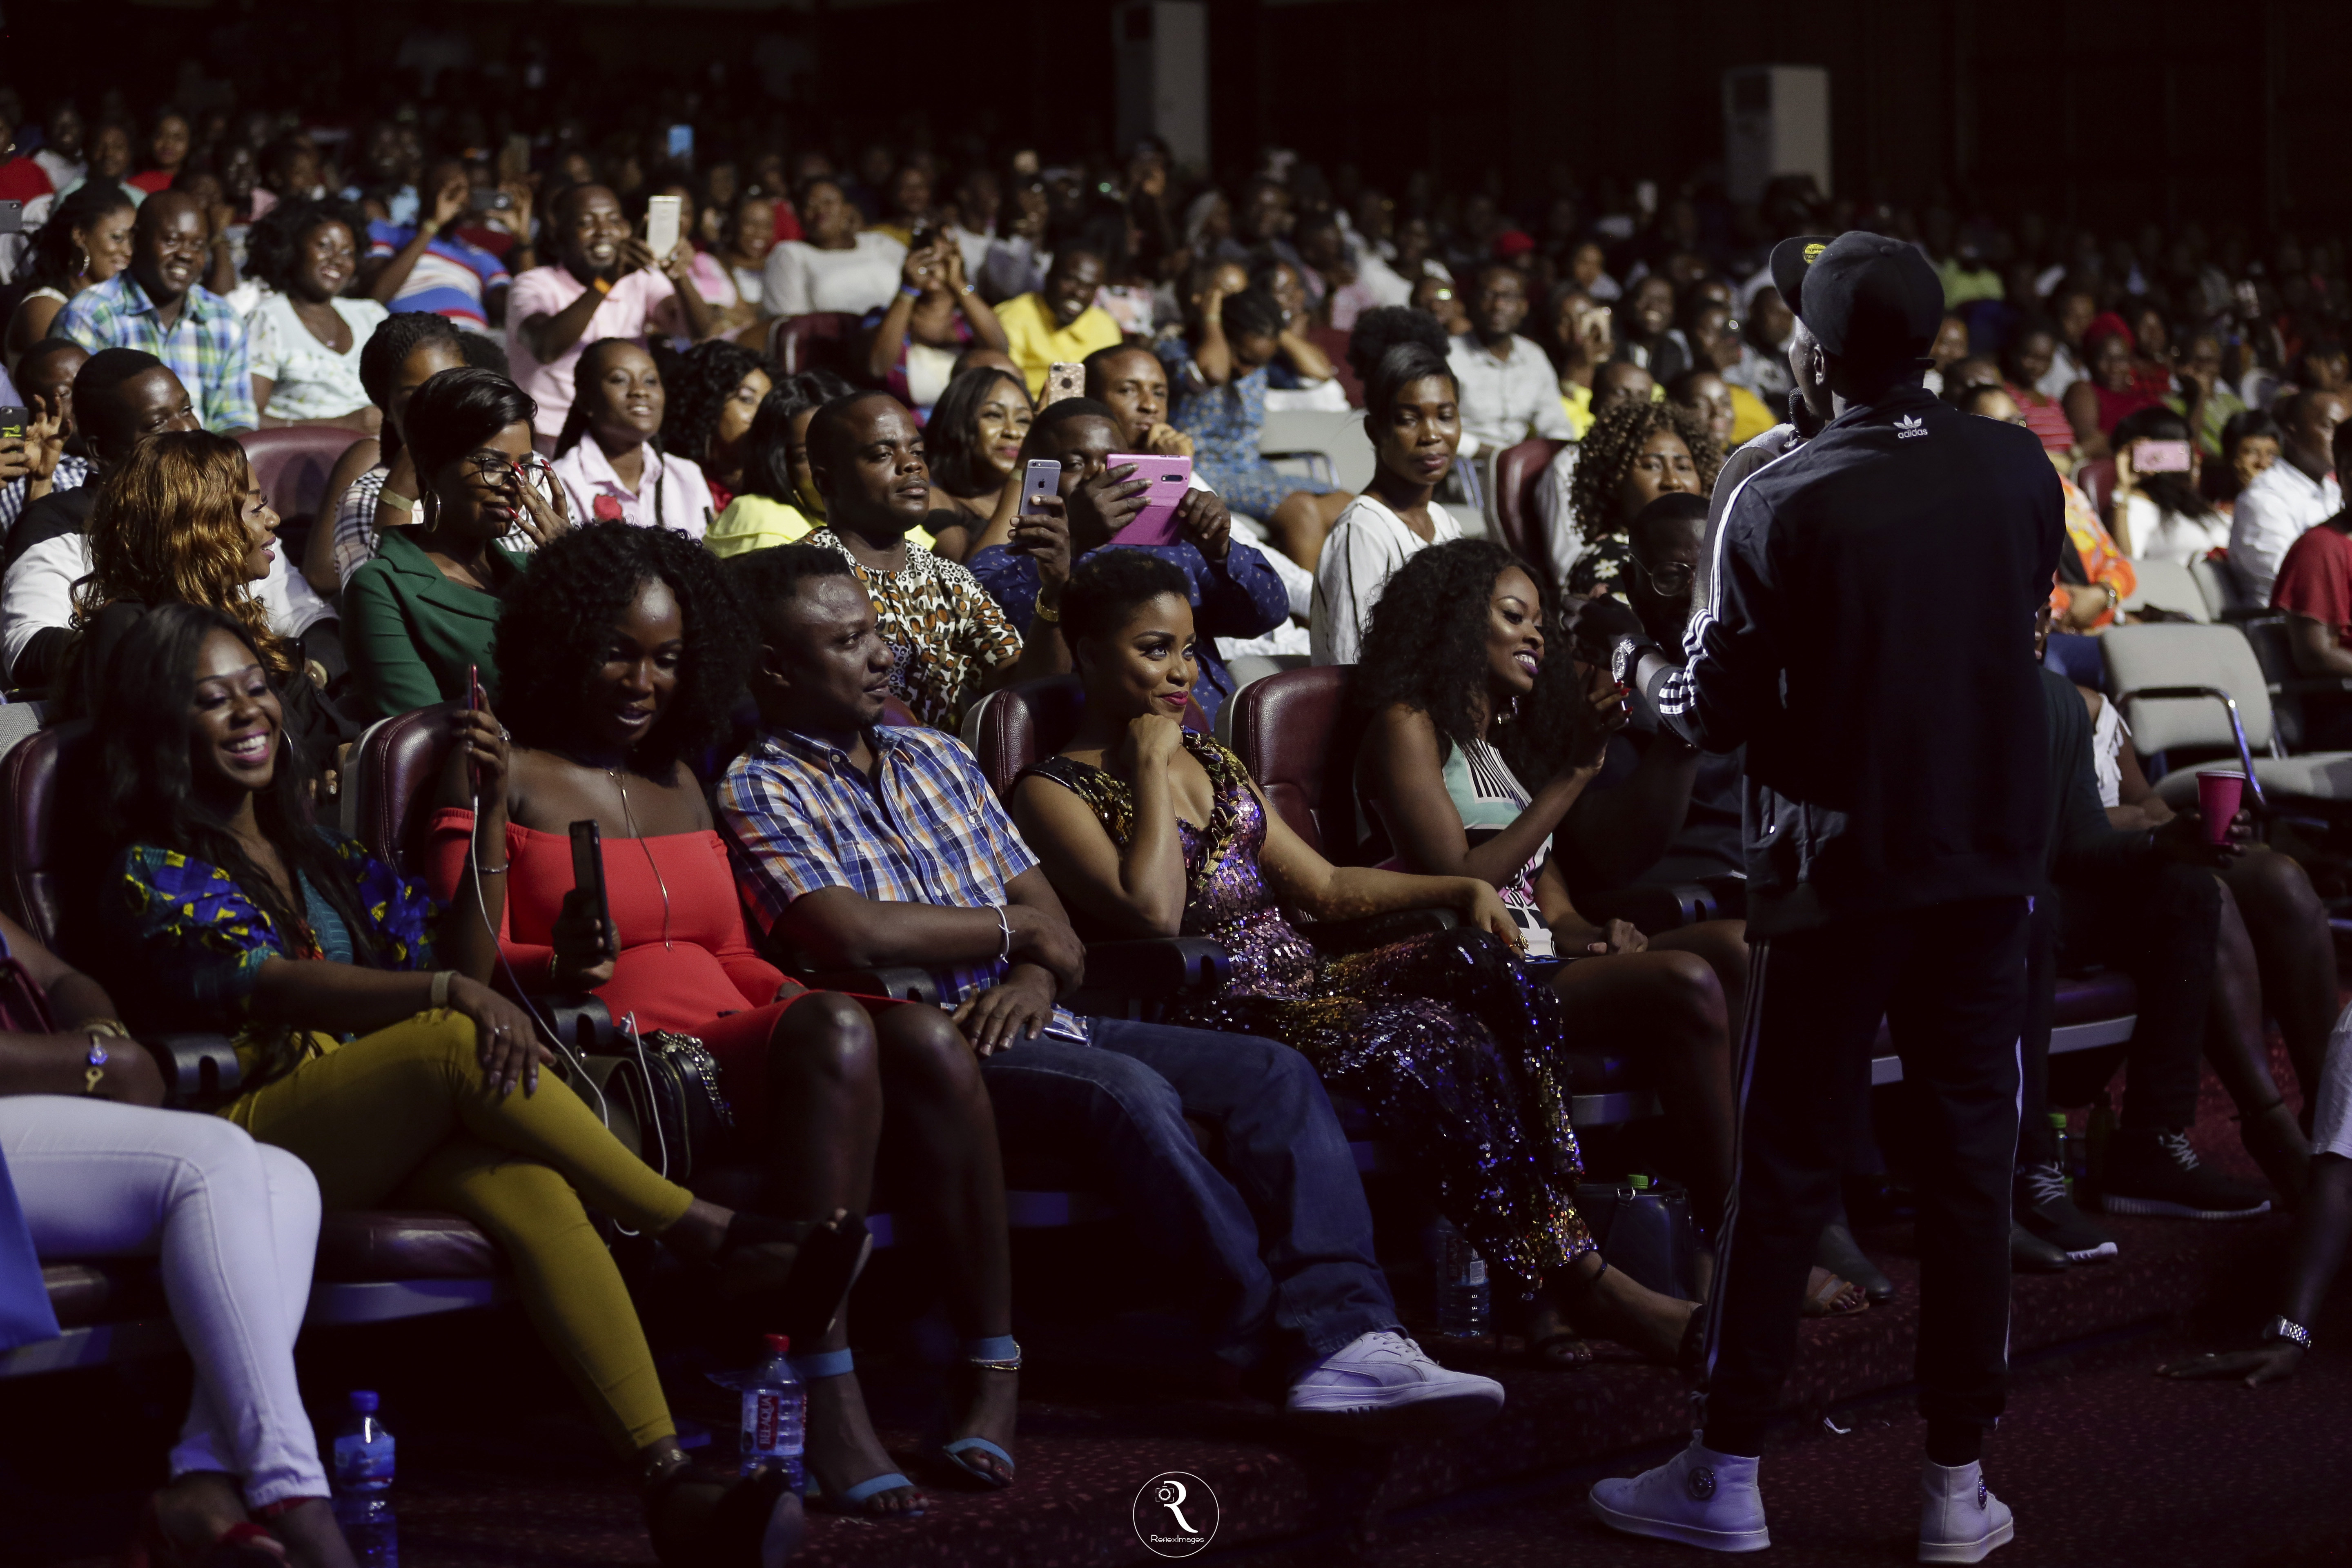 EASTER COMEDY: A thriving humour festival to drive customer experience